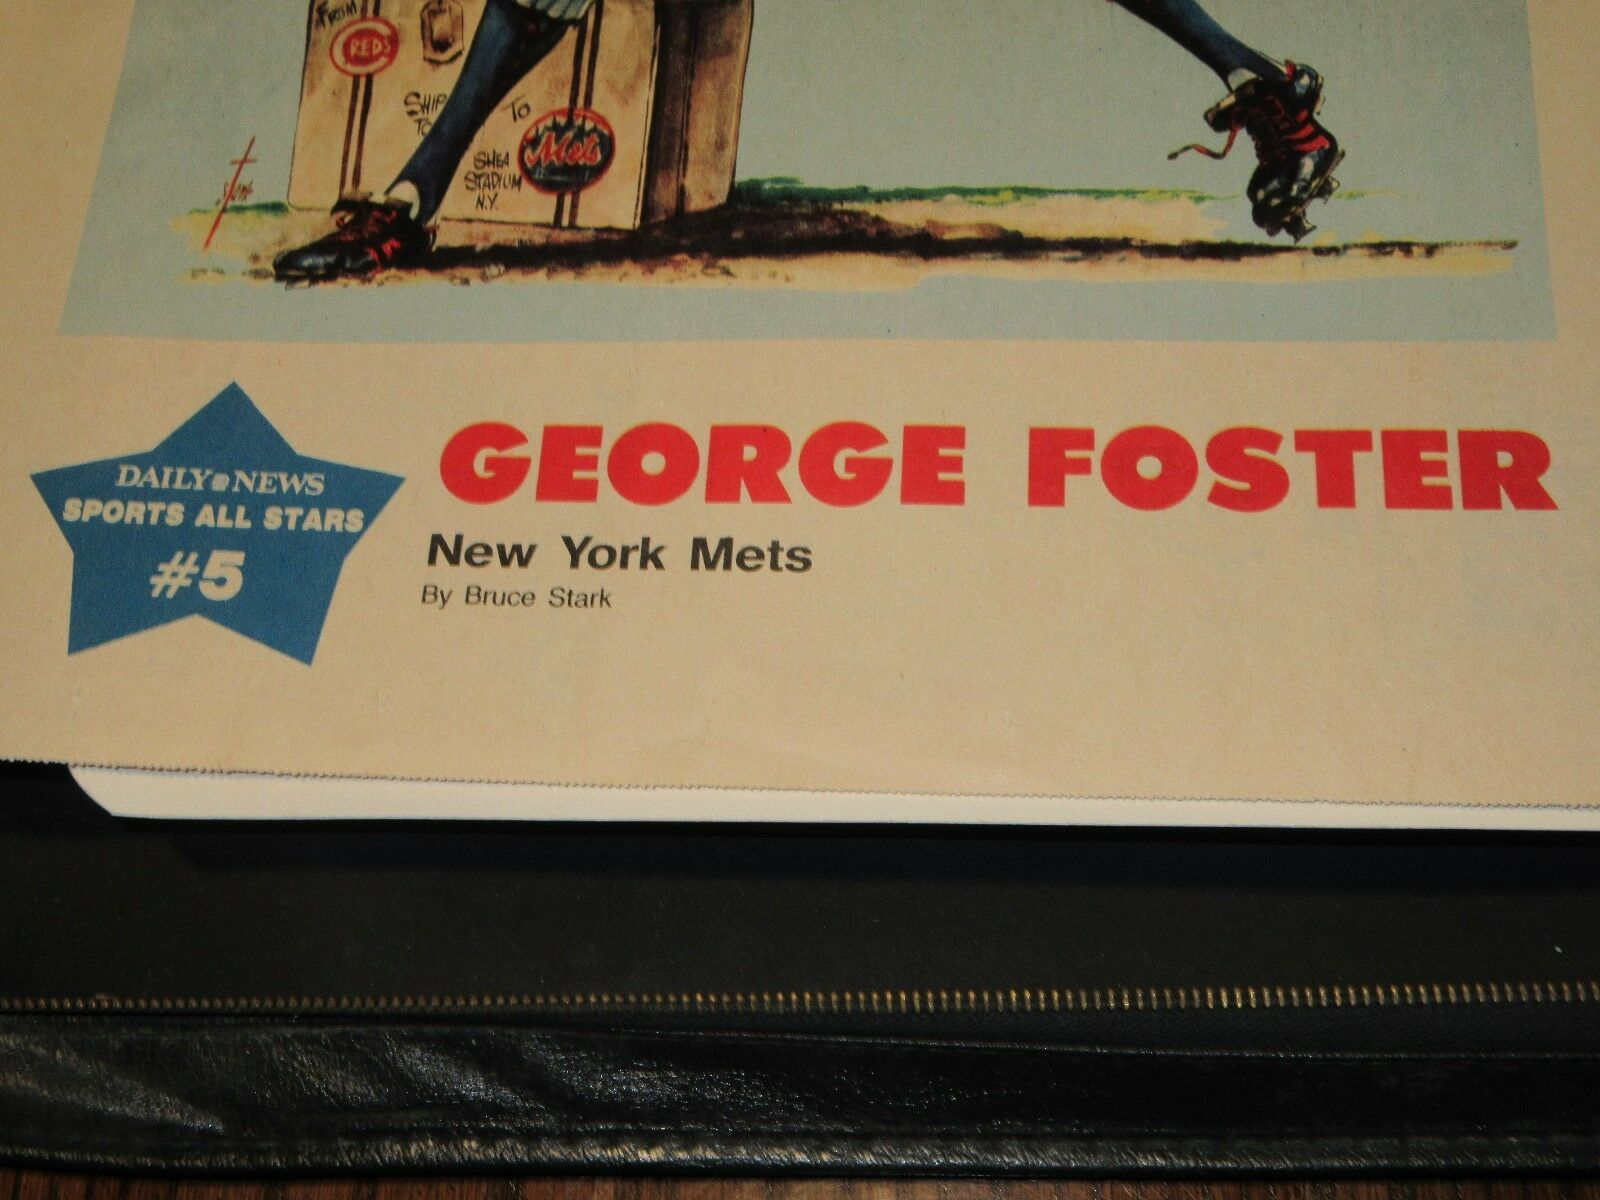 George Foster , New York Sunday News Sports All-Stars #